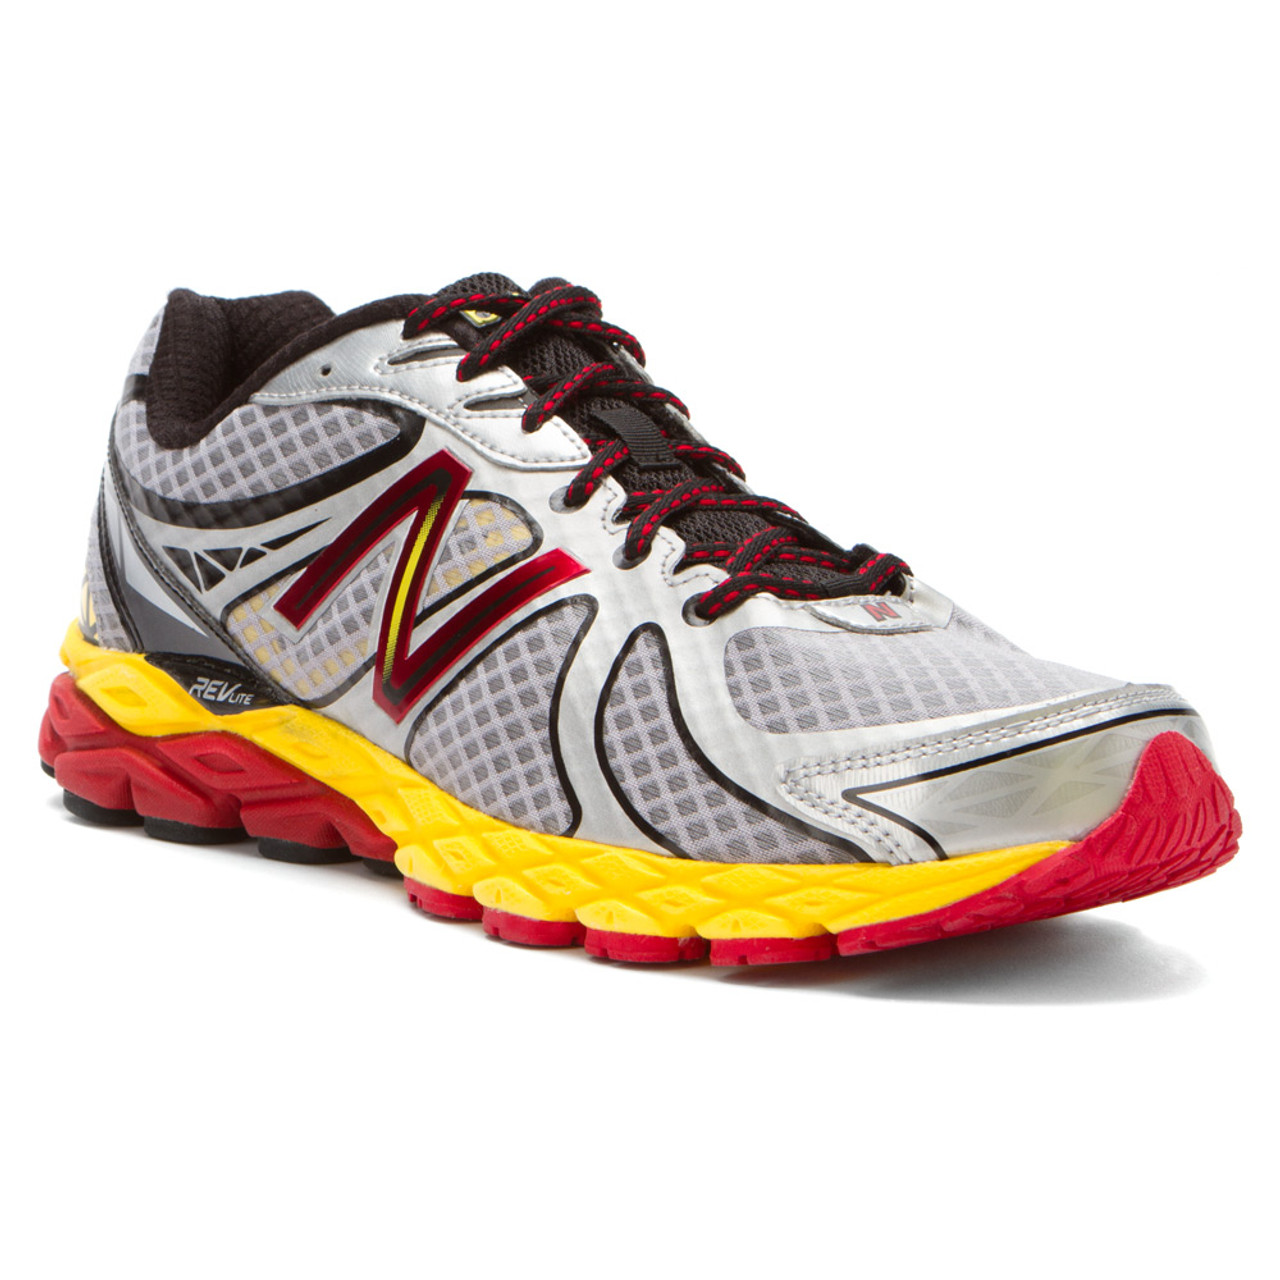 official photos 6ace4 97a4c New Balance M870SY3 Silver Yellow Red Mens Running Shoes - Shop now   Shoolu